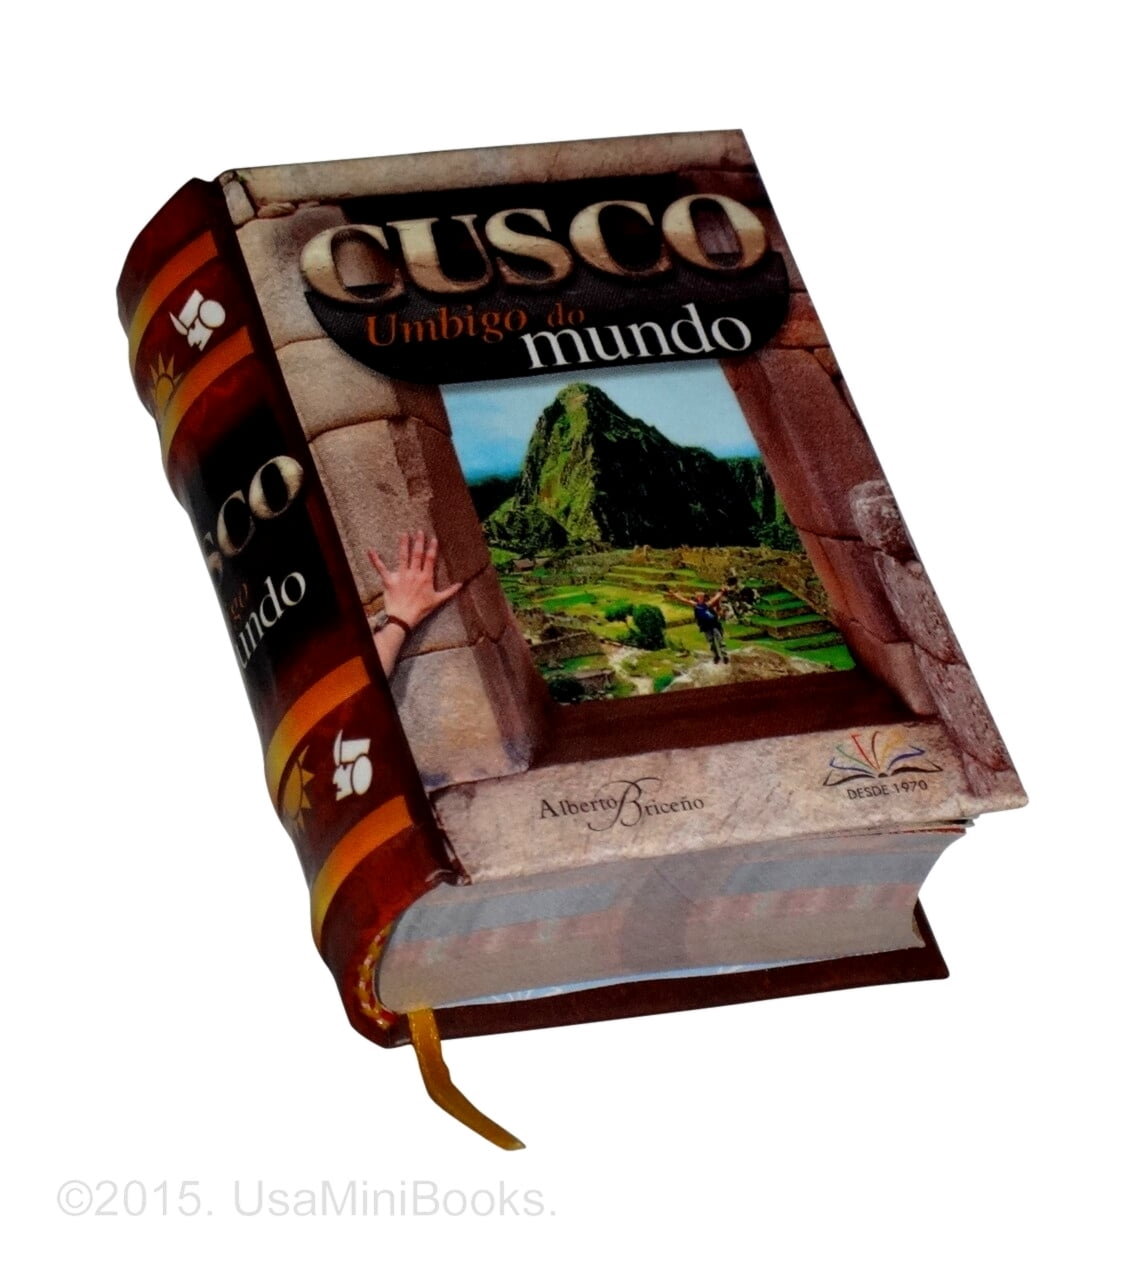 cusco-umbigo-do-mundo-miniature-book-libro